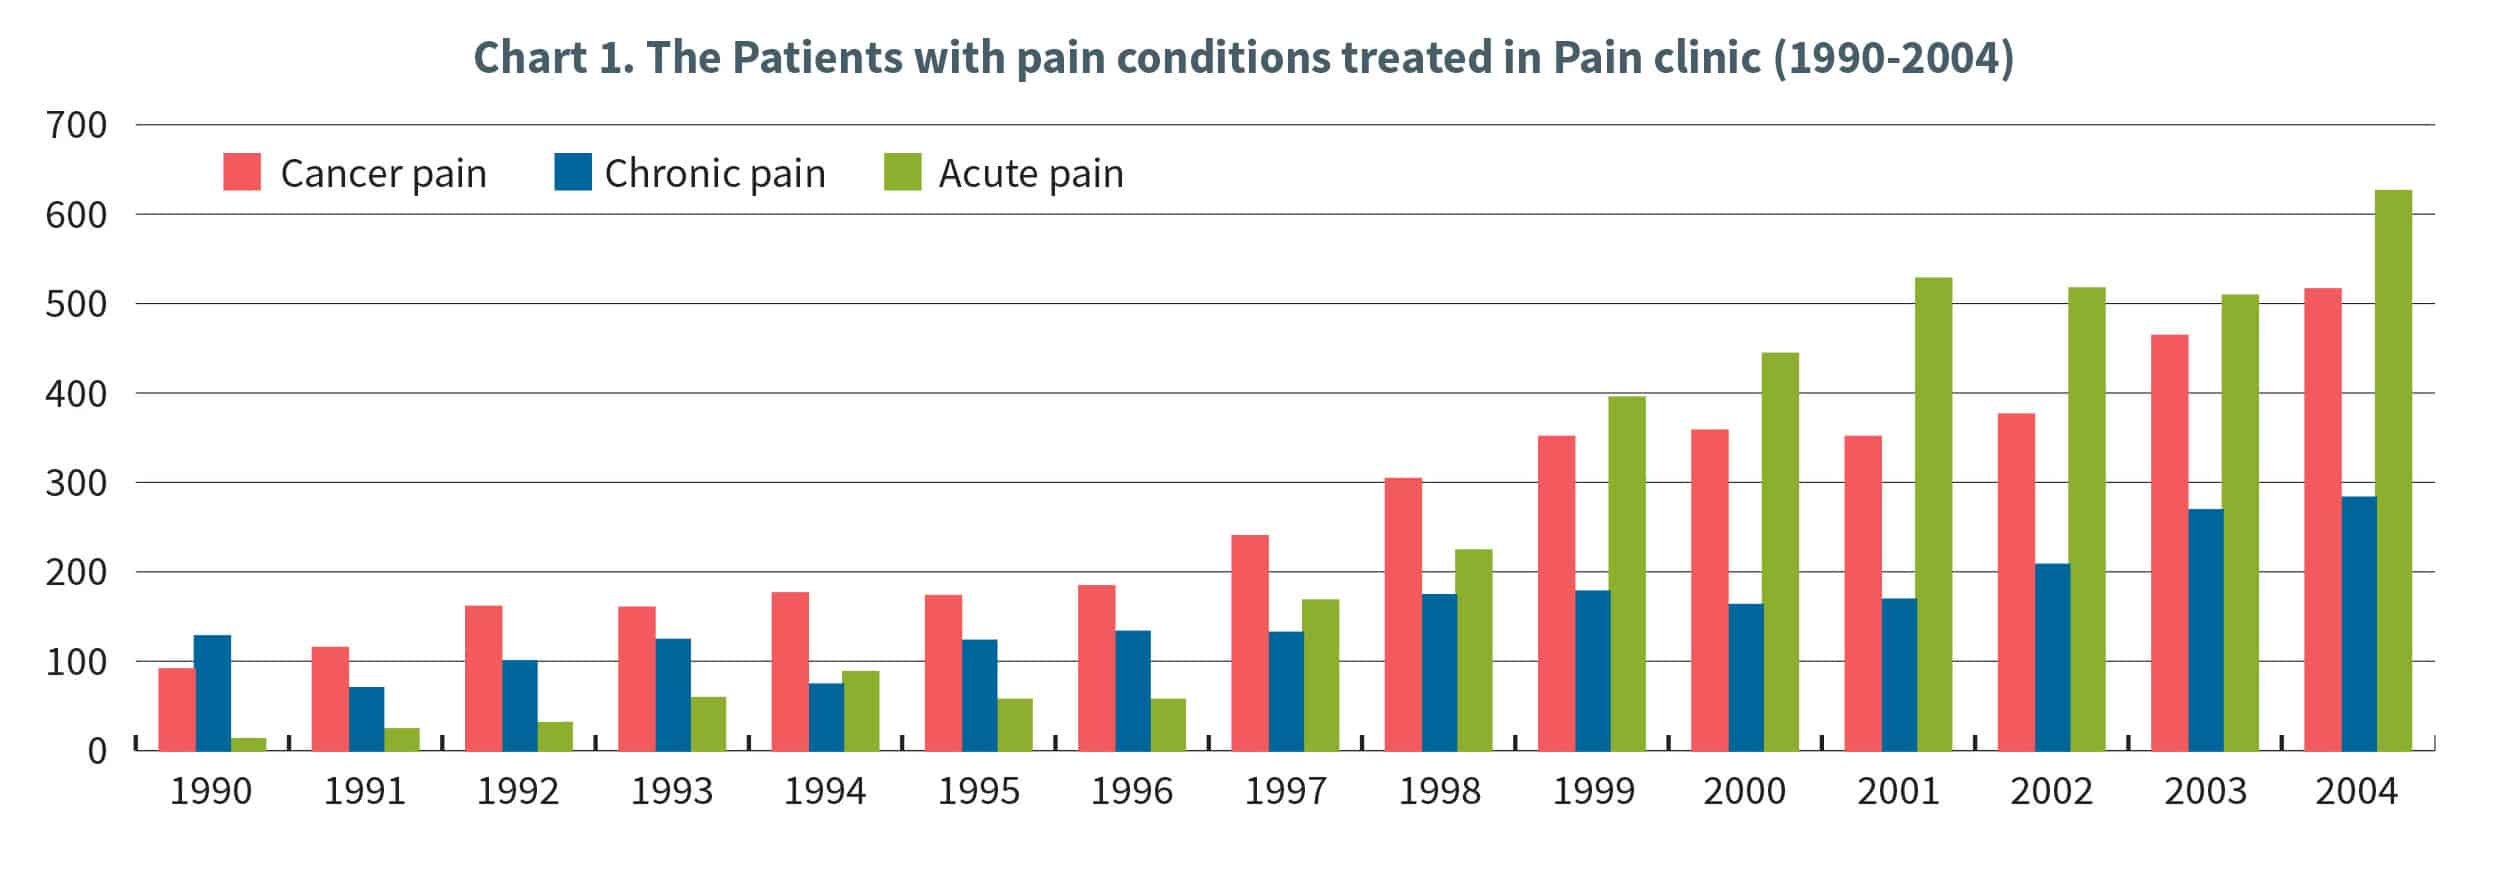 Chart 1. The Patients with pain conditions treated in Pain clinic (1990-2004)